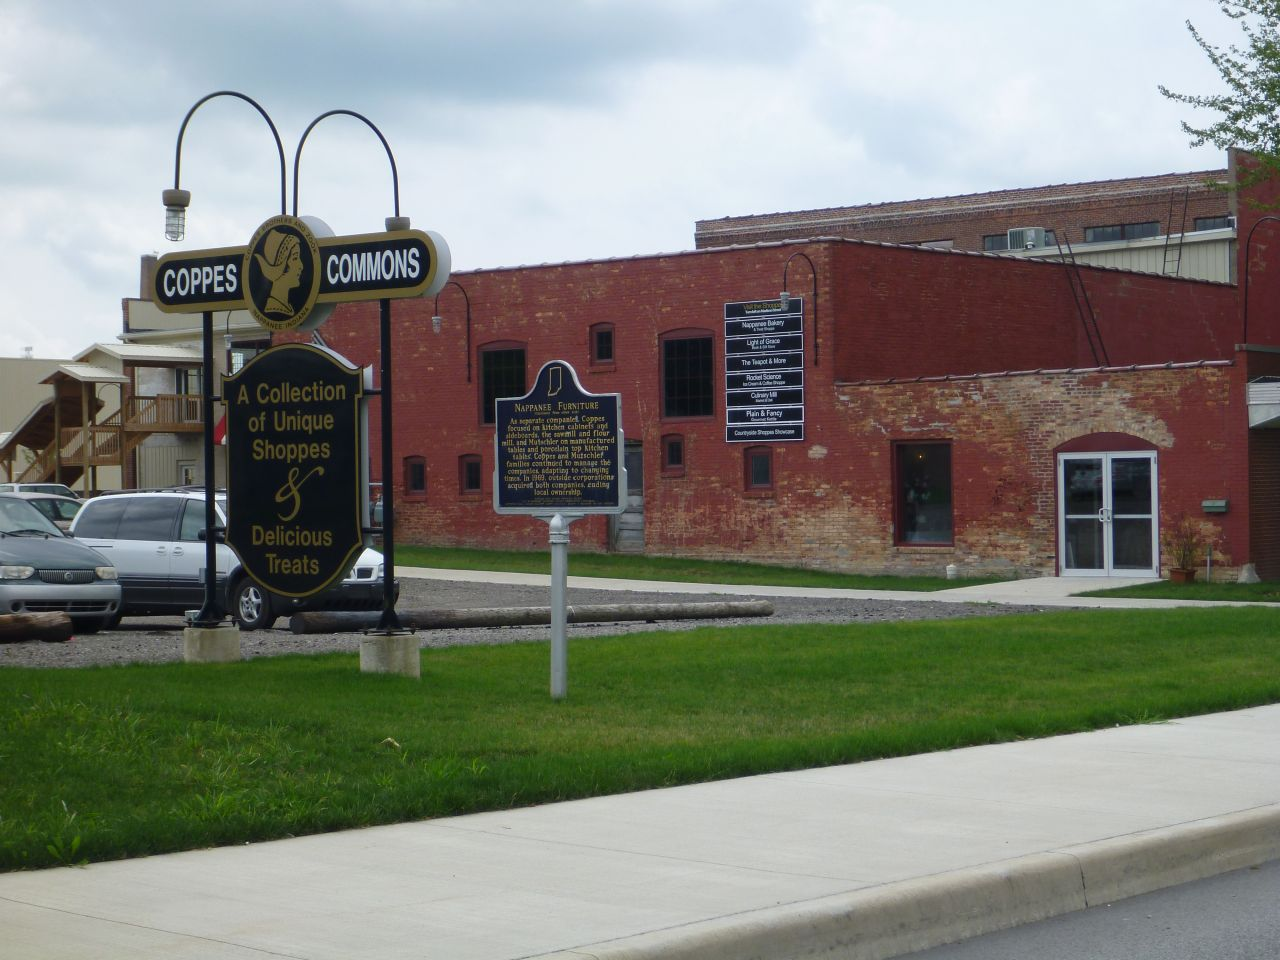 Coppes Commons In Nappanee, IN